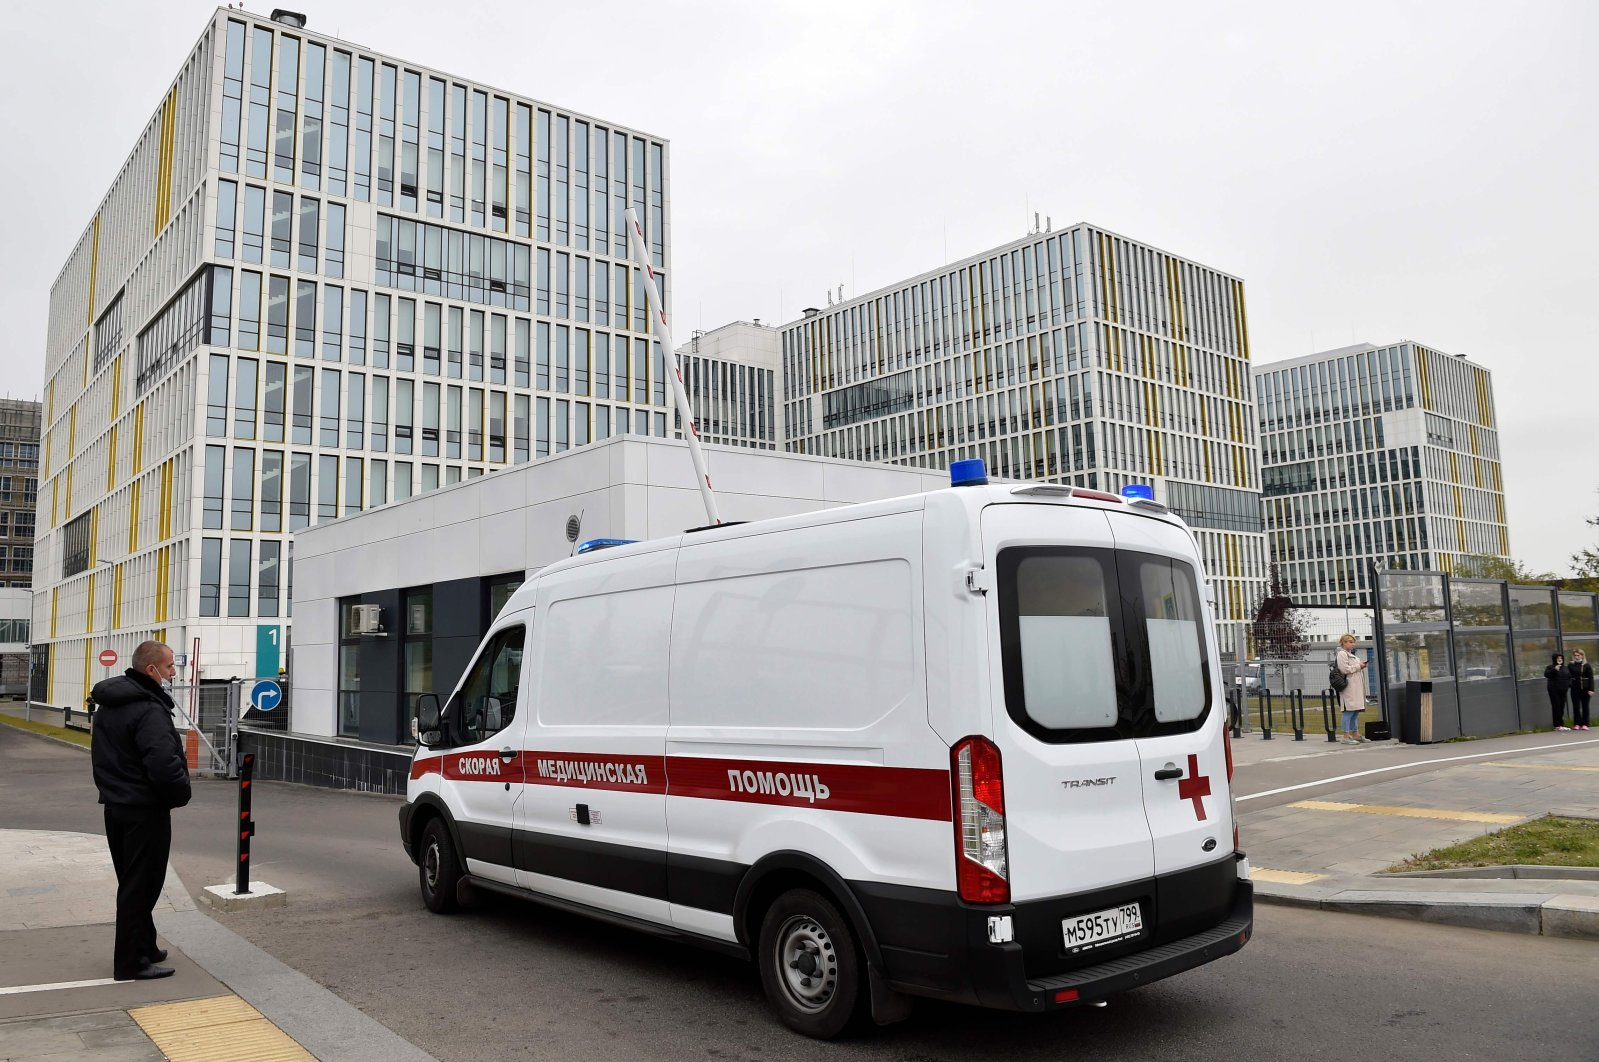 An ambulance drives into the yard of a hospital in Kommunarka outside Moscow, Russia, Sept. 28, 2020. (AFP Photo)